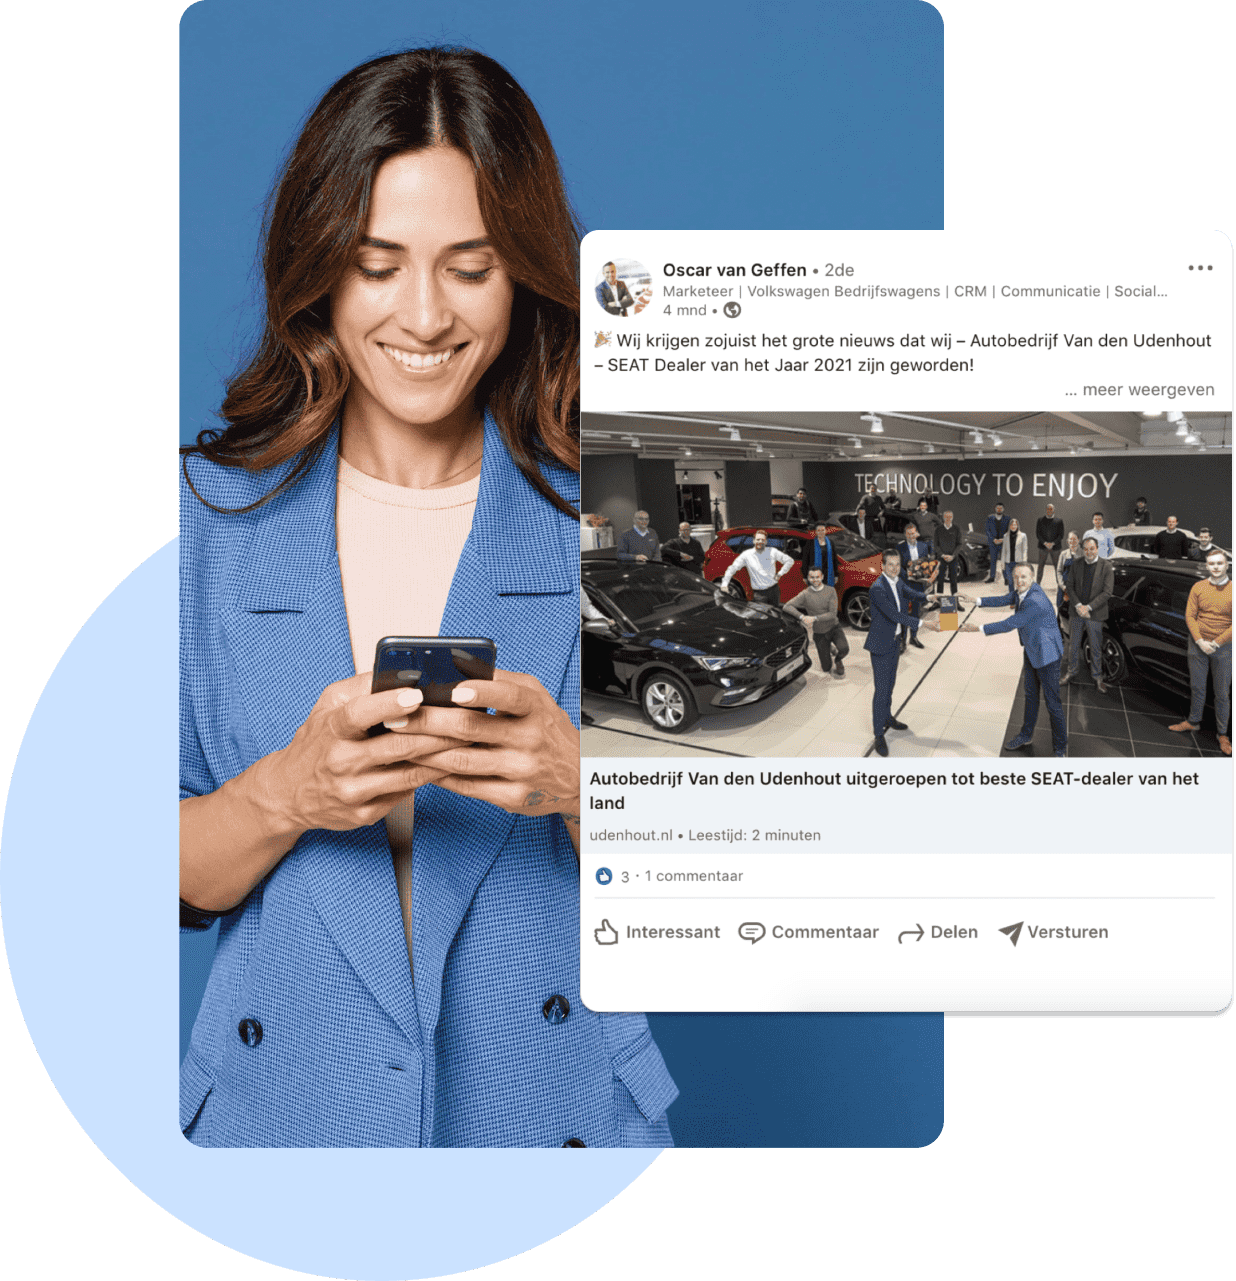 Increase value and social media engagement for your company